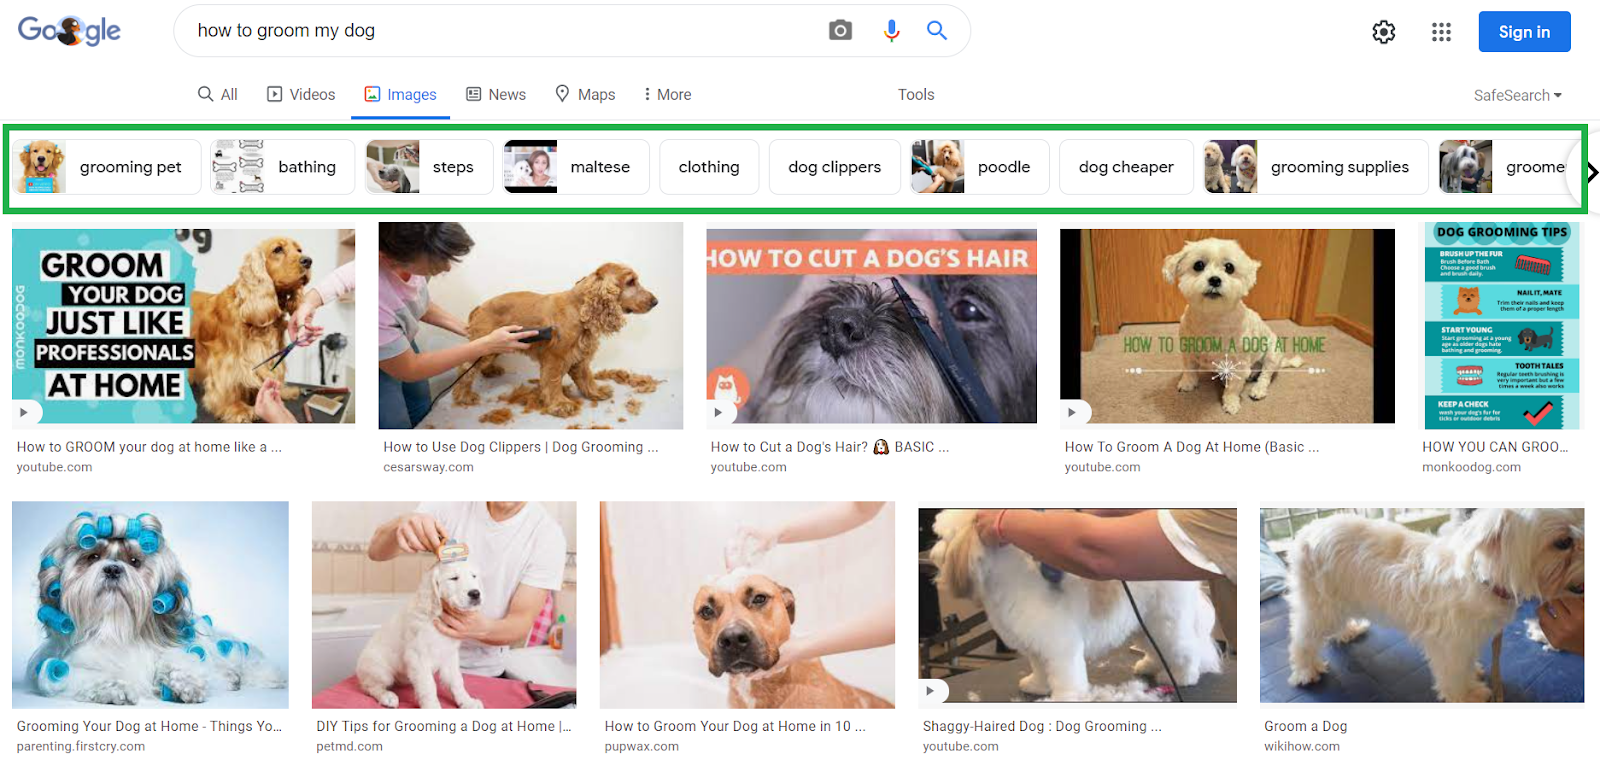 google tools for keyword research image results